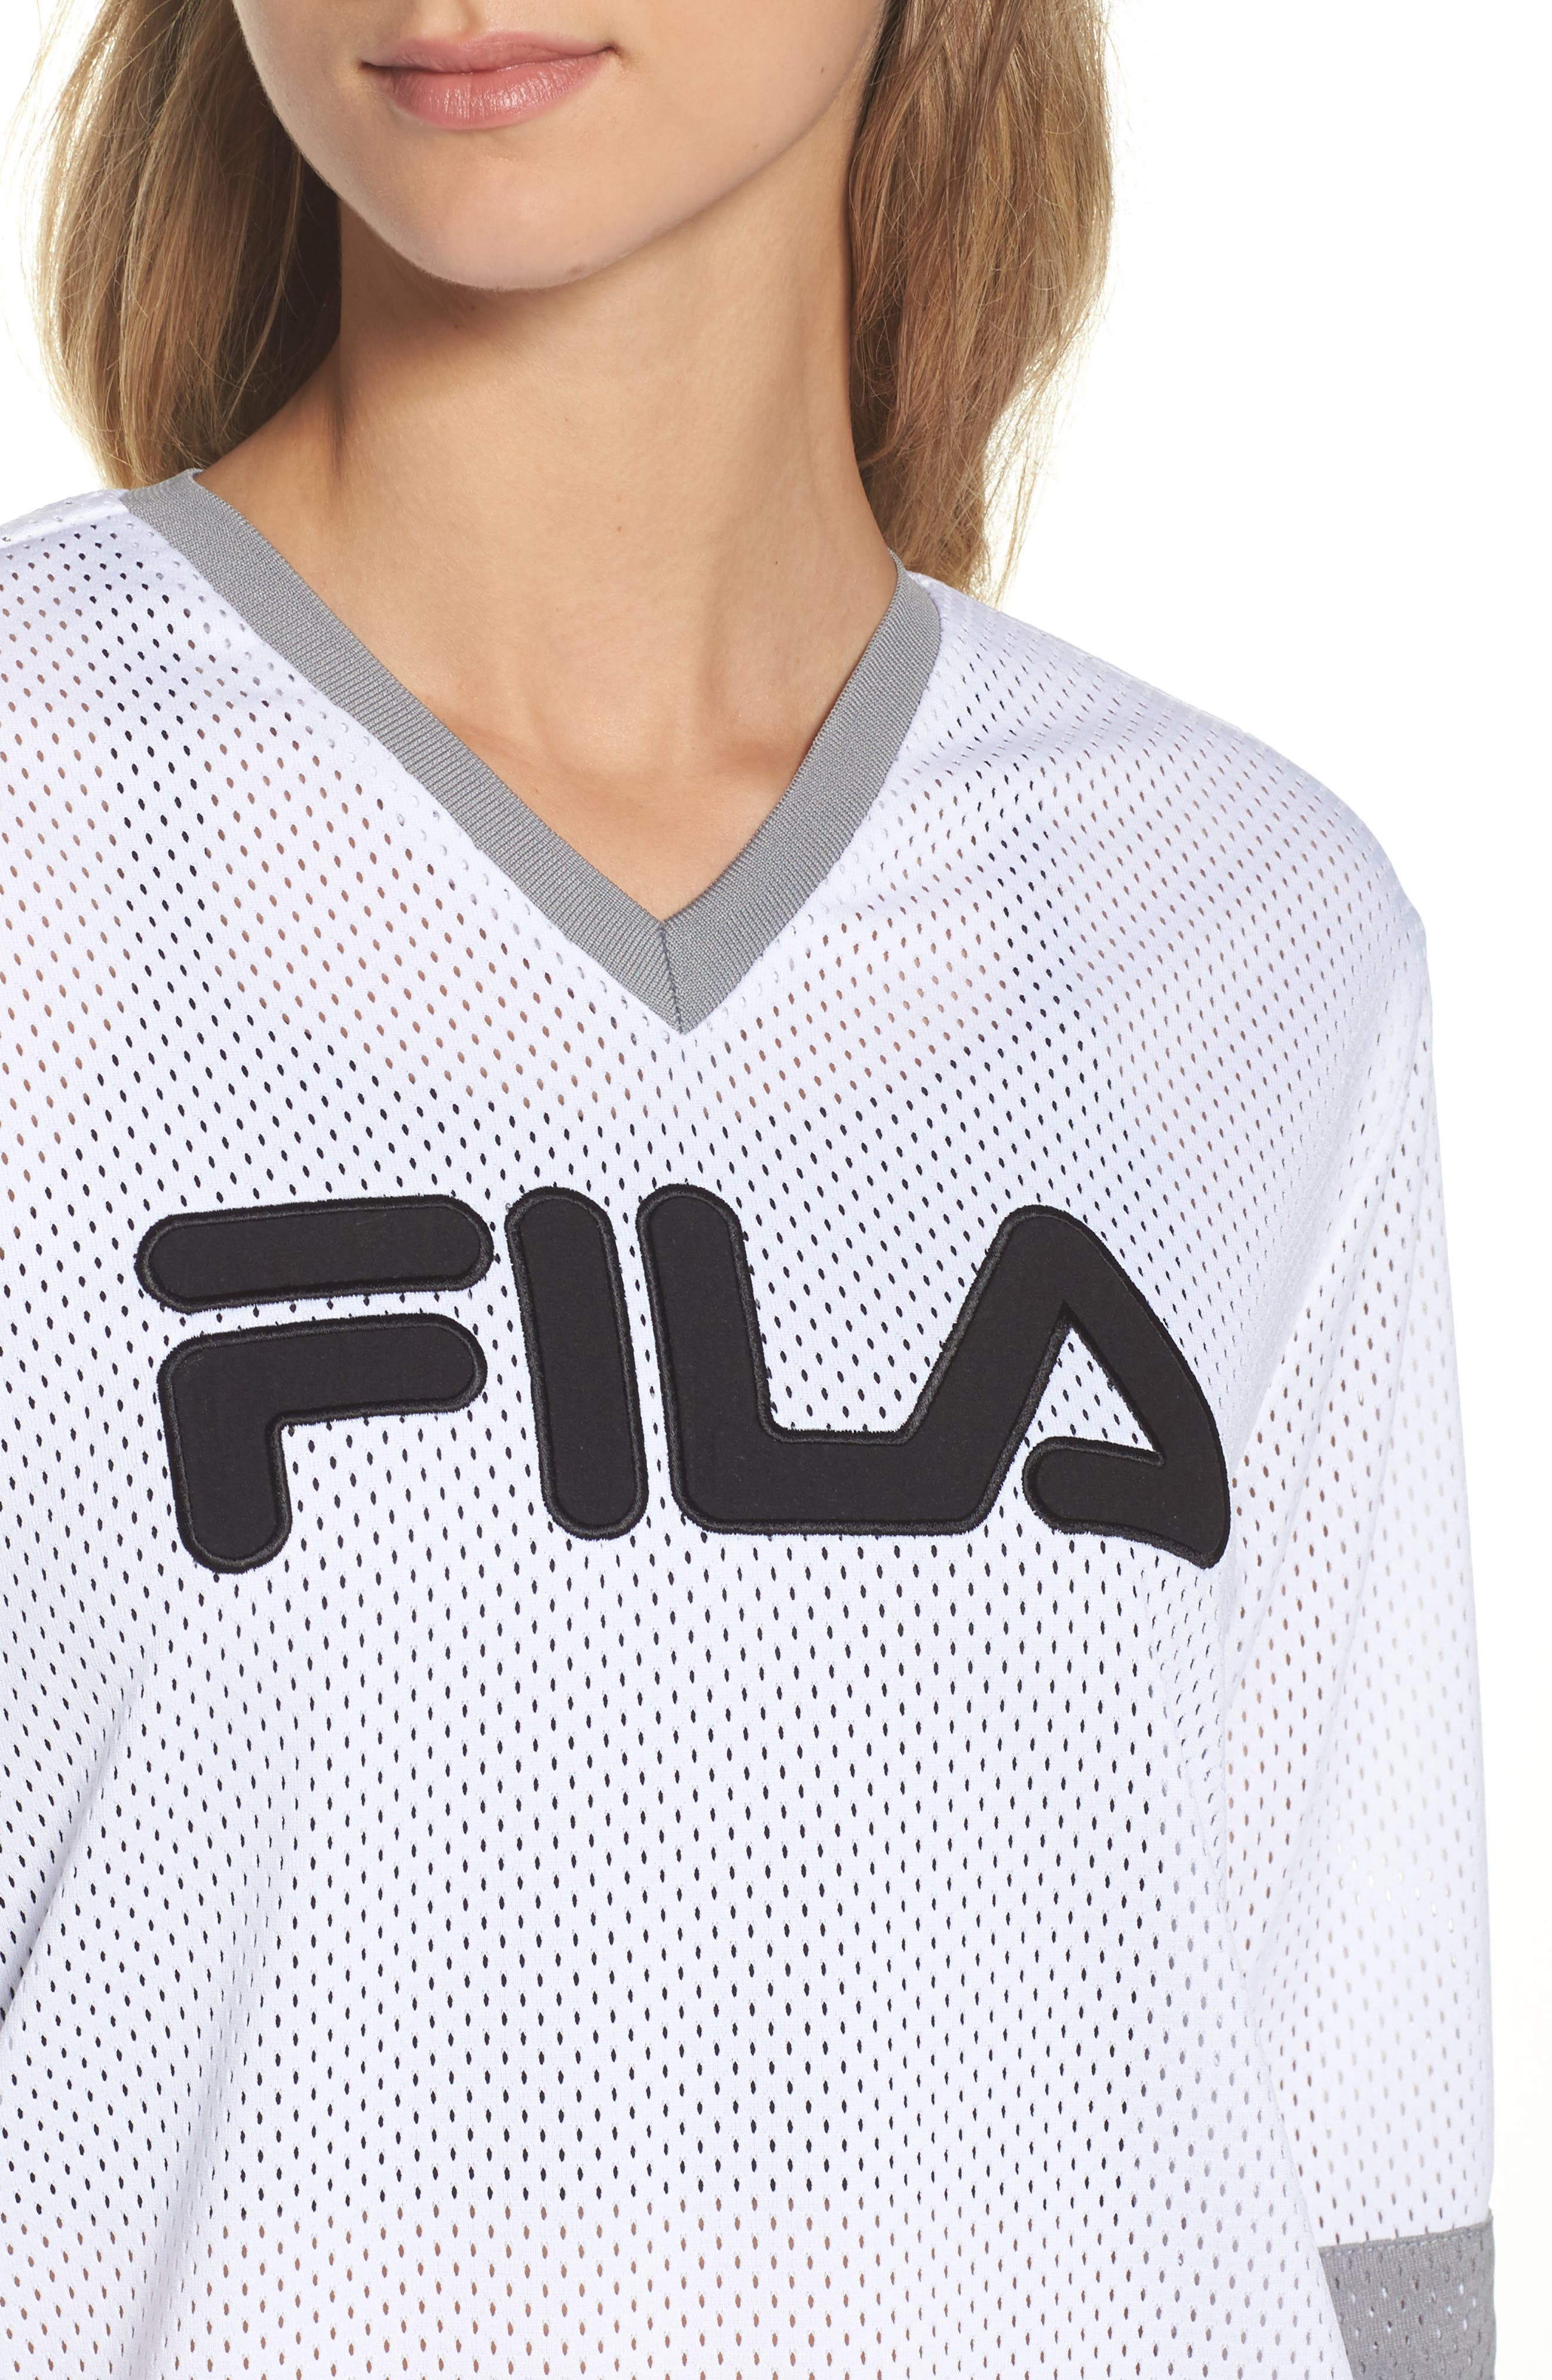 Tanya Hockey Jersey,                             Alternate thumbnail 4, color,                             White/ Black/ Silver Dollar